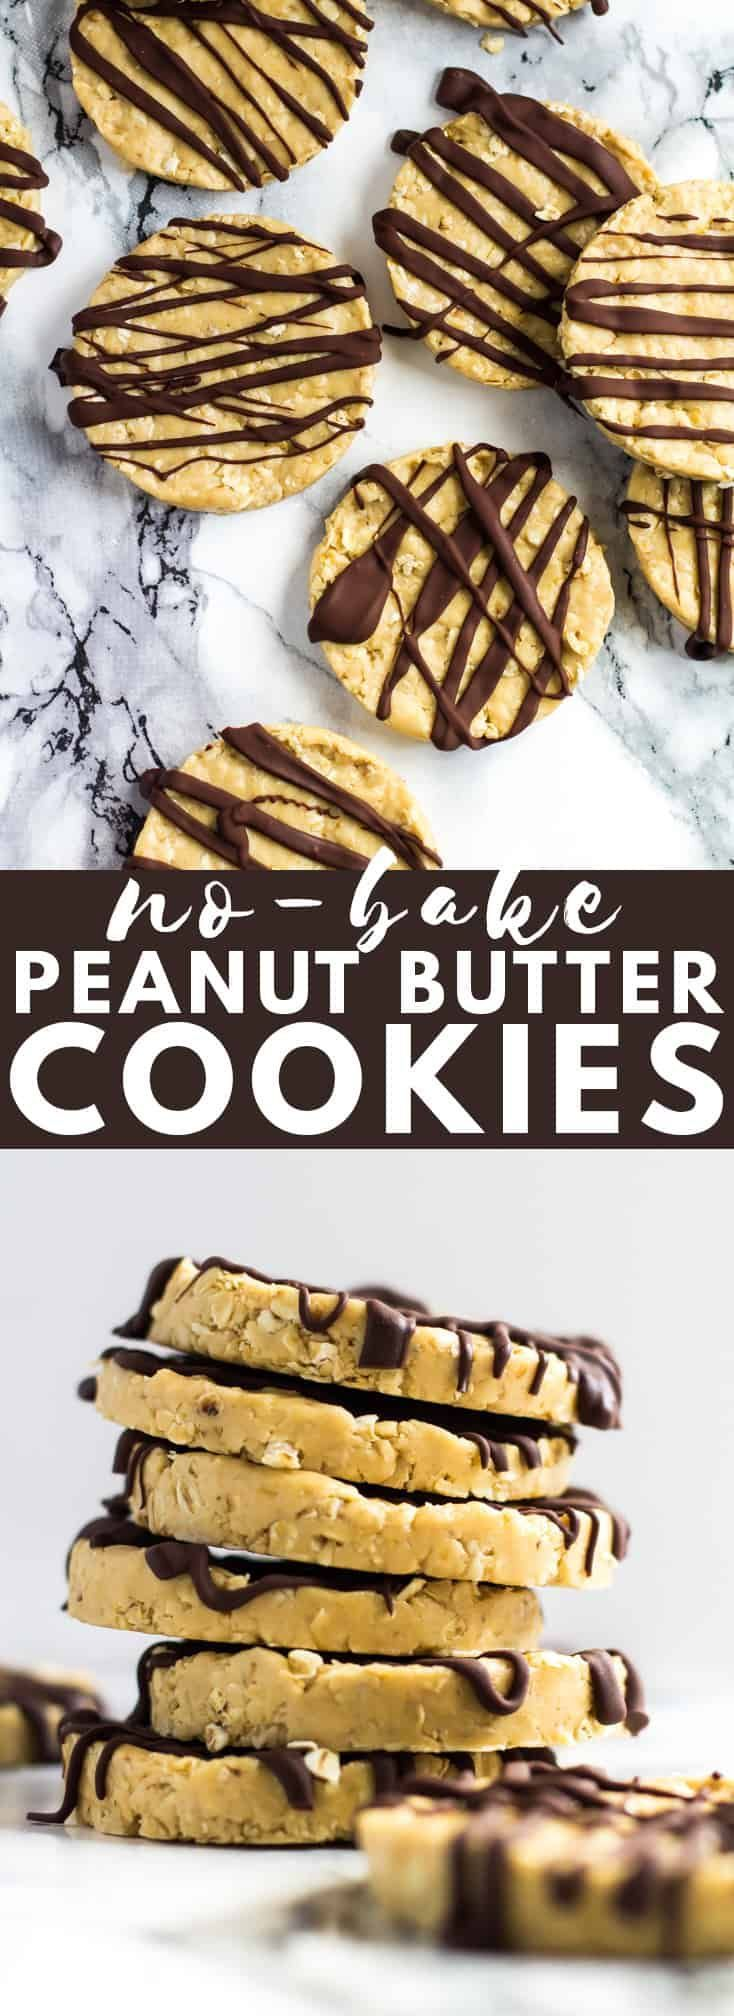 No-Bake Peanut Butter Cookies - These cookies are soft, creamy, loaded with peanut butter flavour, no-bake, and only require 4 simple ingredients to make!